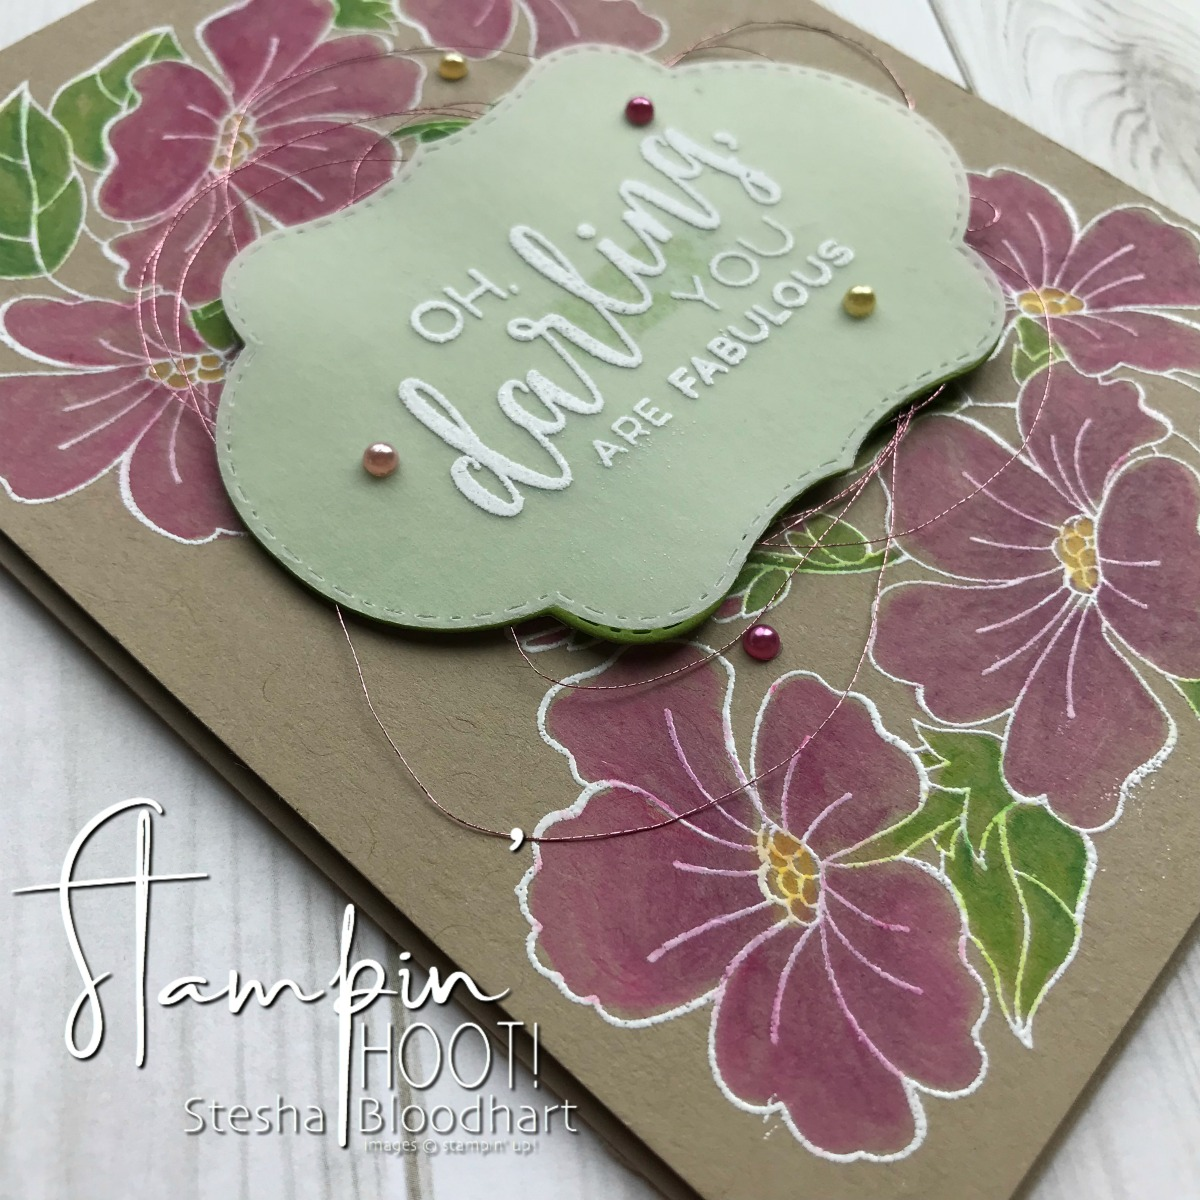 Blended Seasons Bundle by Stampin' Up! Heat Embossed Card created by Stesha Bloodhart, Stampin' Hoot! #tgifc169 #steshabloodhart #stampinhoot